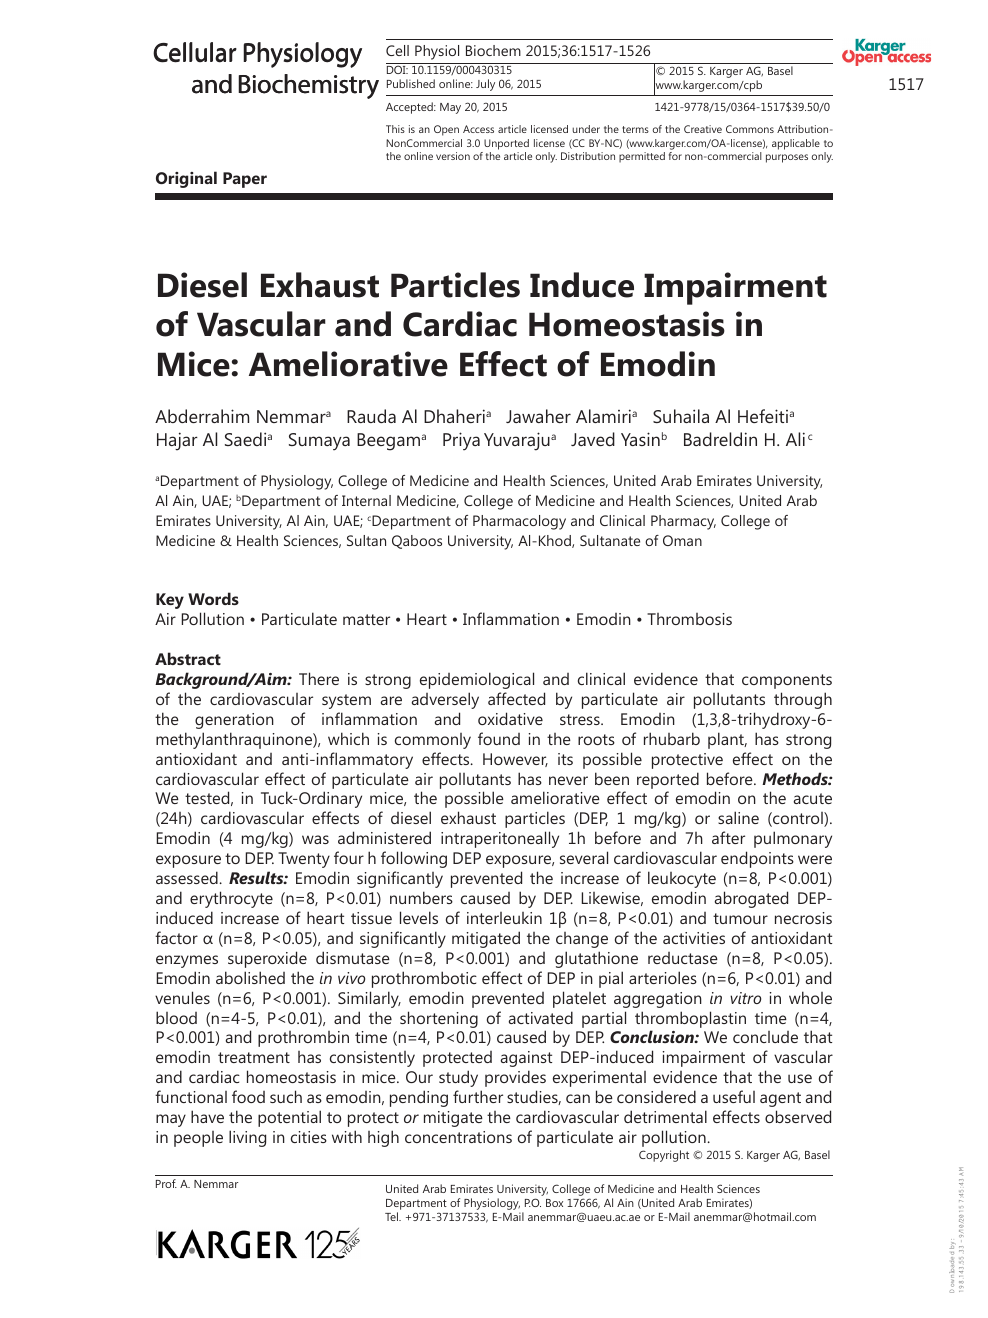 Diesel Exhaust Particles Induce Impairment of Vascular and Cardiac